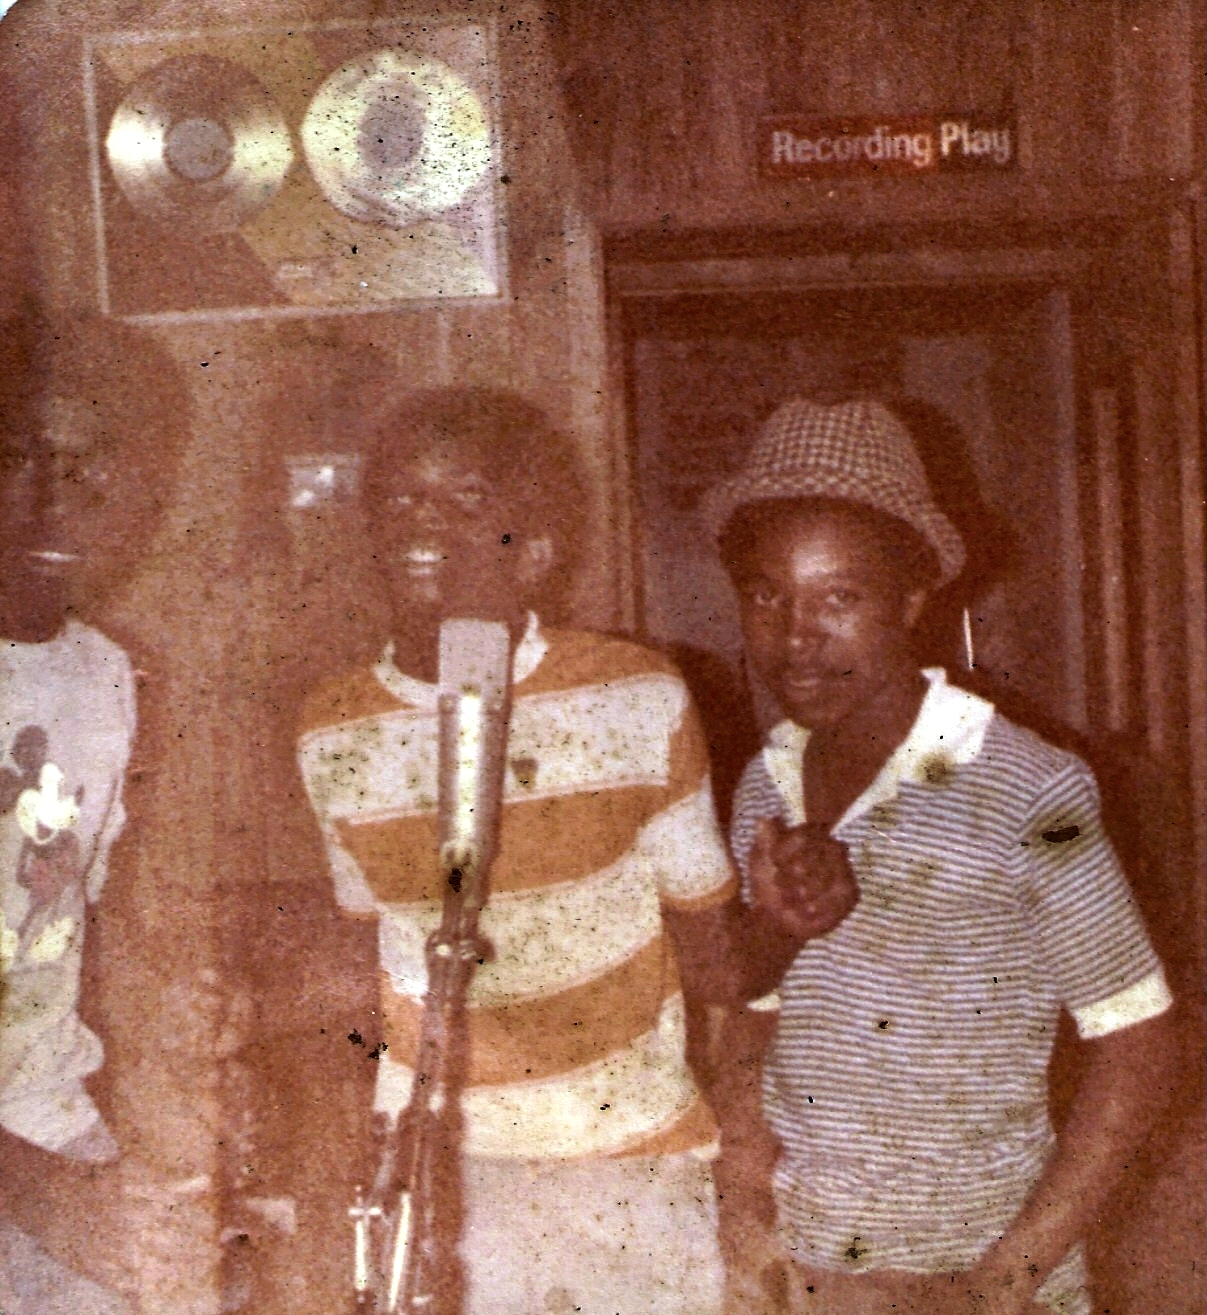 First Tuff Gong recording session